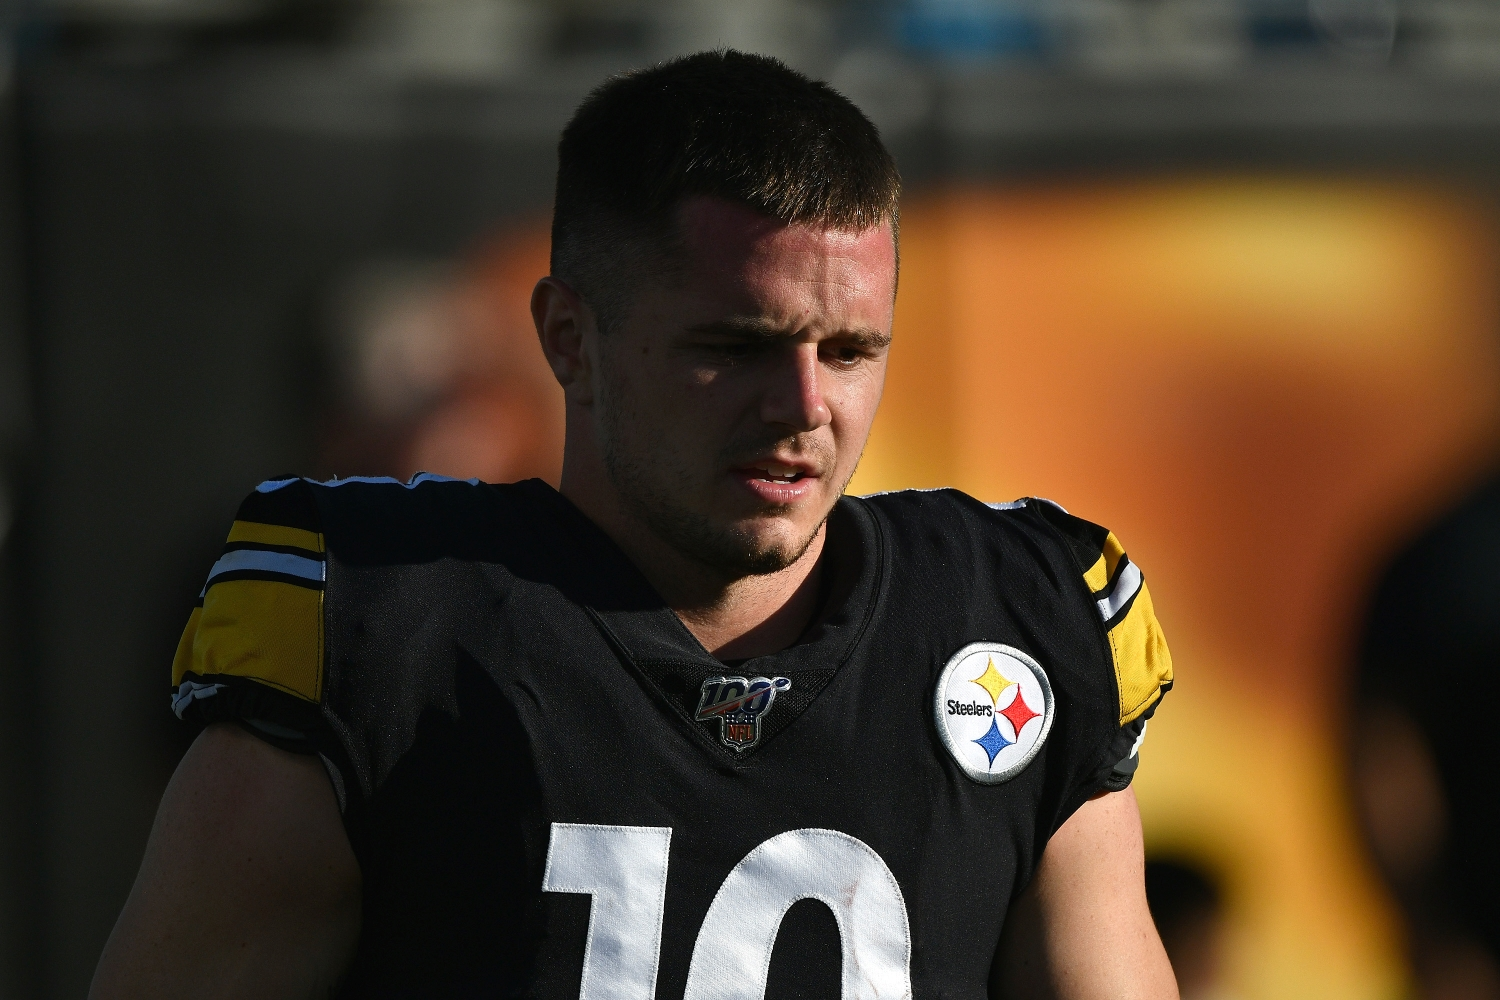 Current Cleveland Browns WR Ryan Switzer stands without his helmet back when he played for the Pittsburgh Steelers.